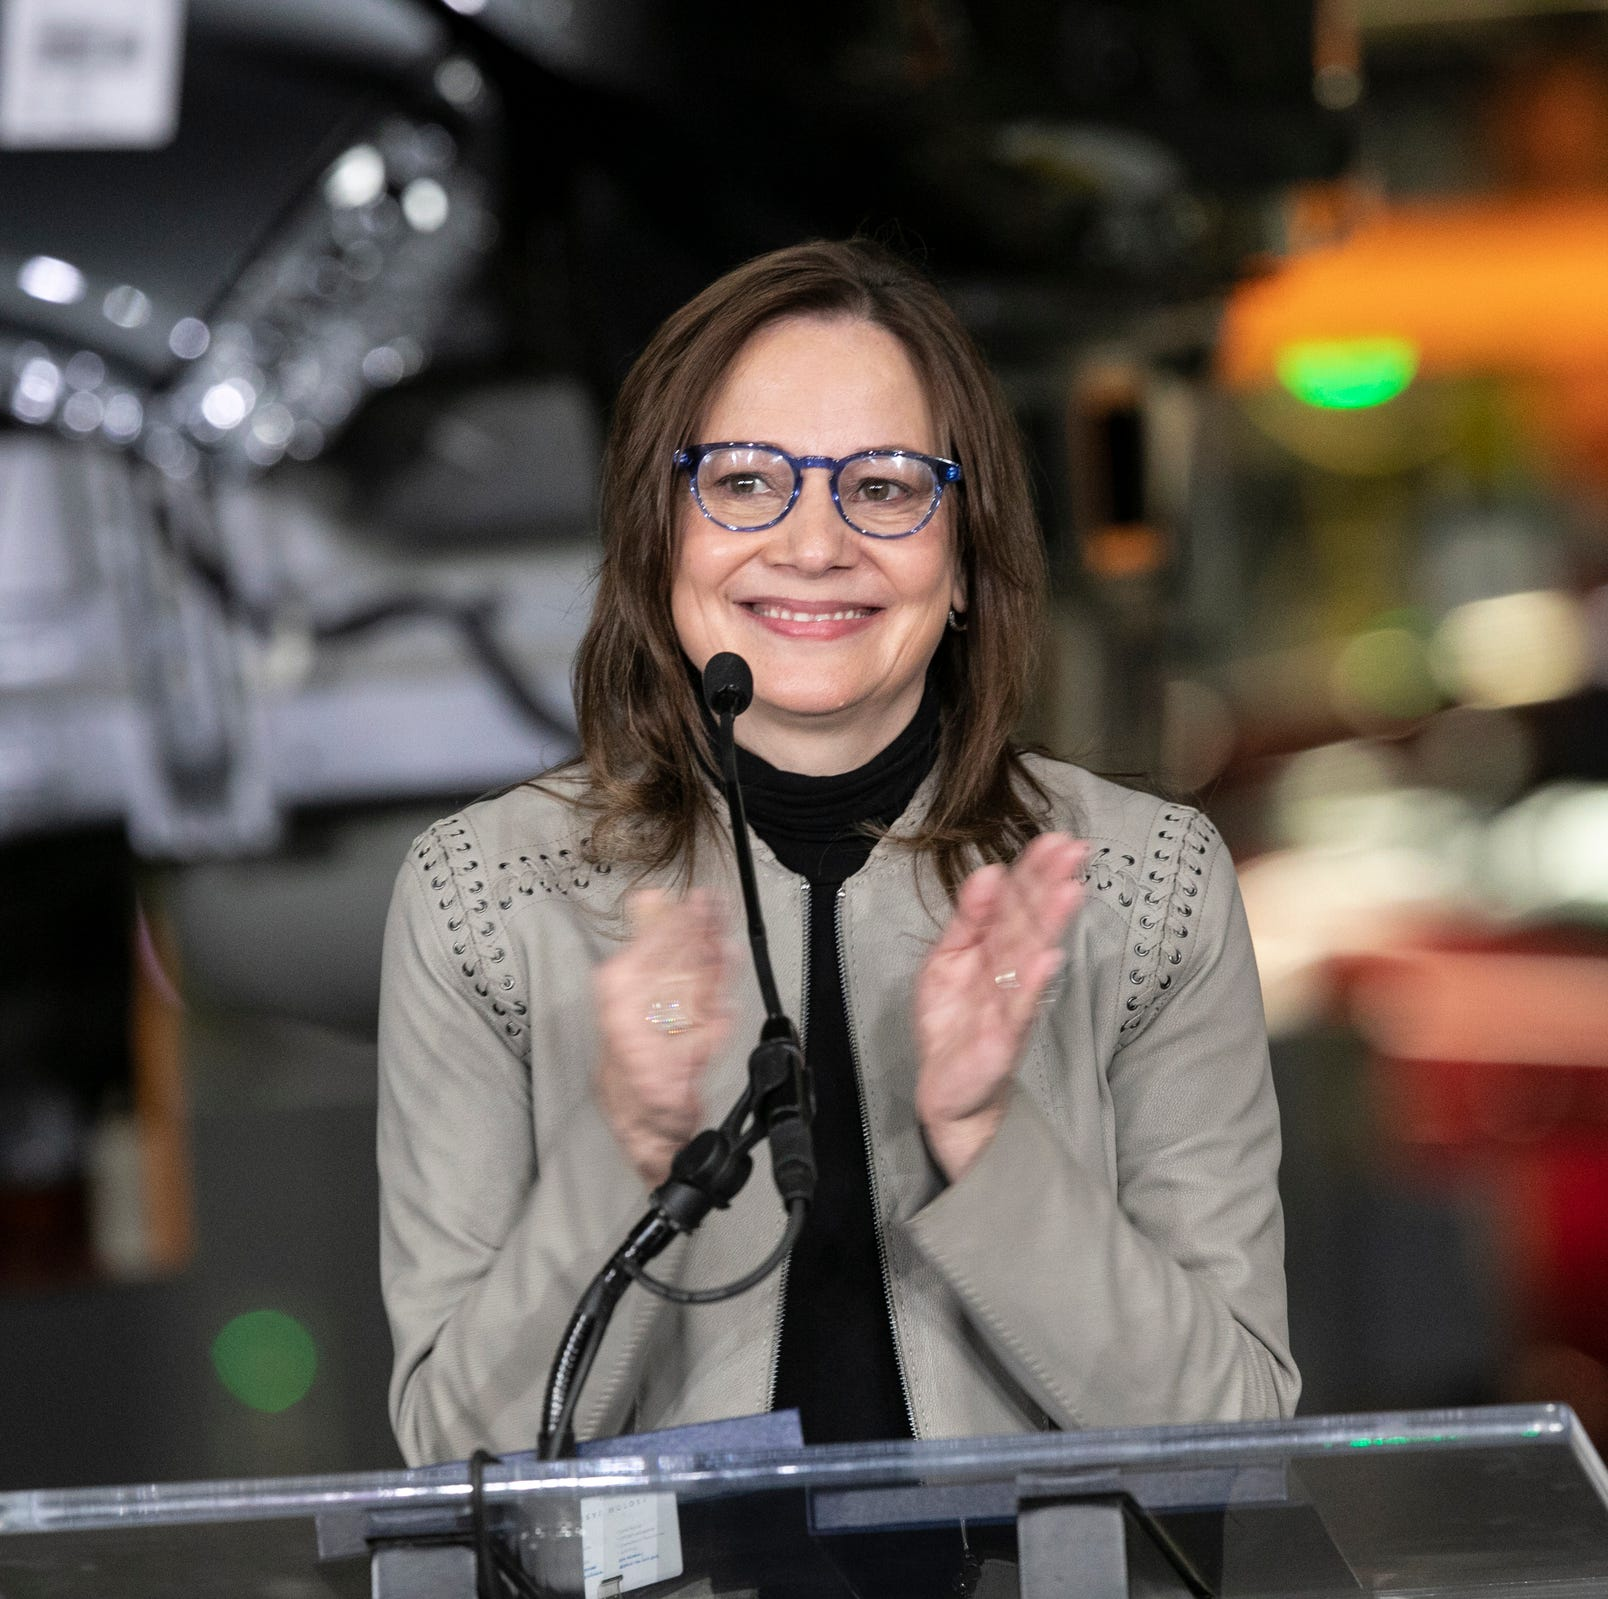 GM CEO Mary Barra's compensation was $21.87 million in 2018, 281 times median GM worker